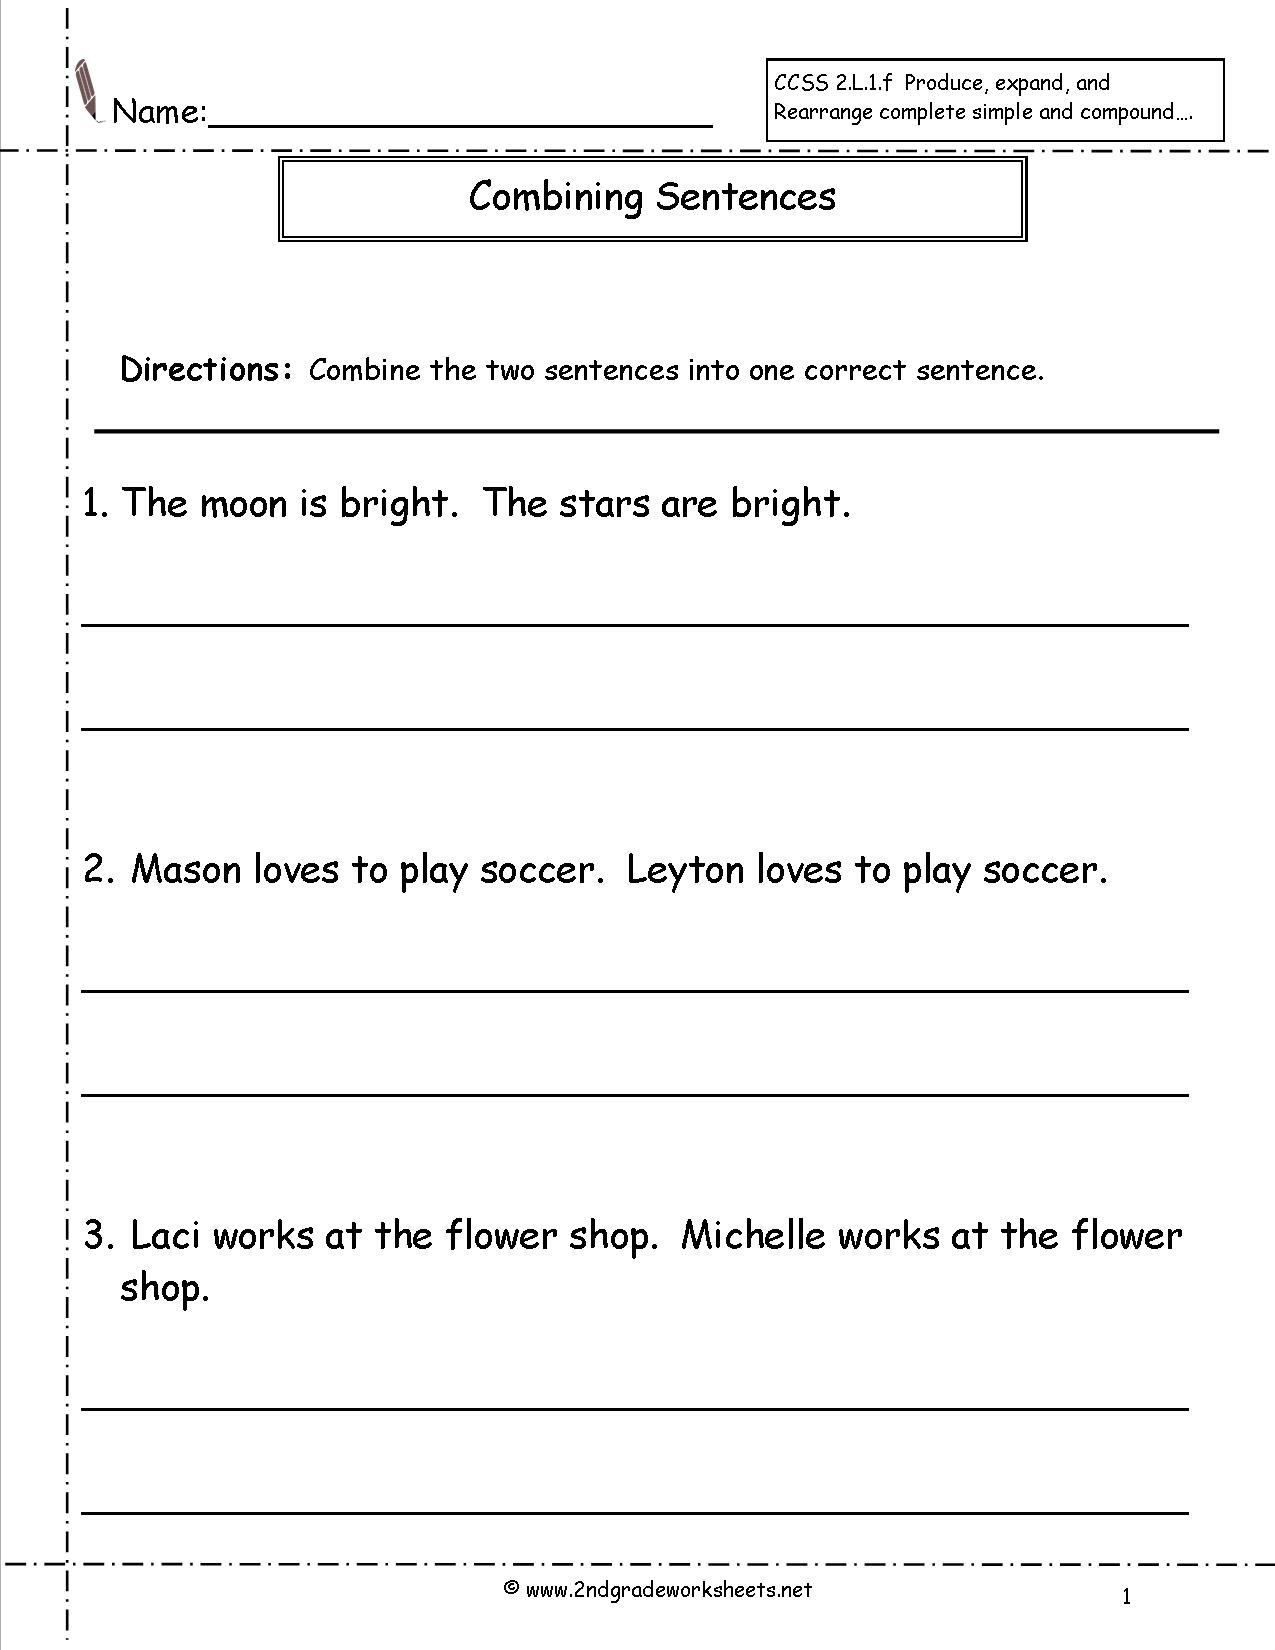 16 Best Images Of Printable Grammar Worksheets For 3rd